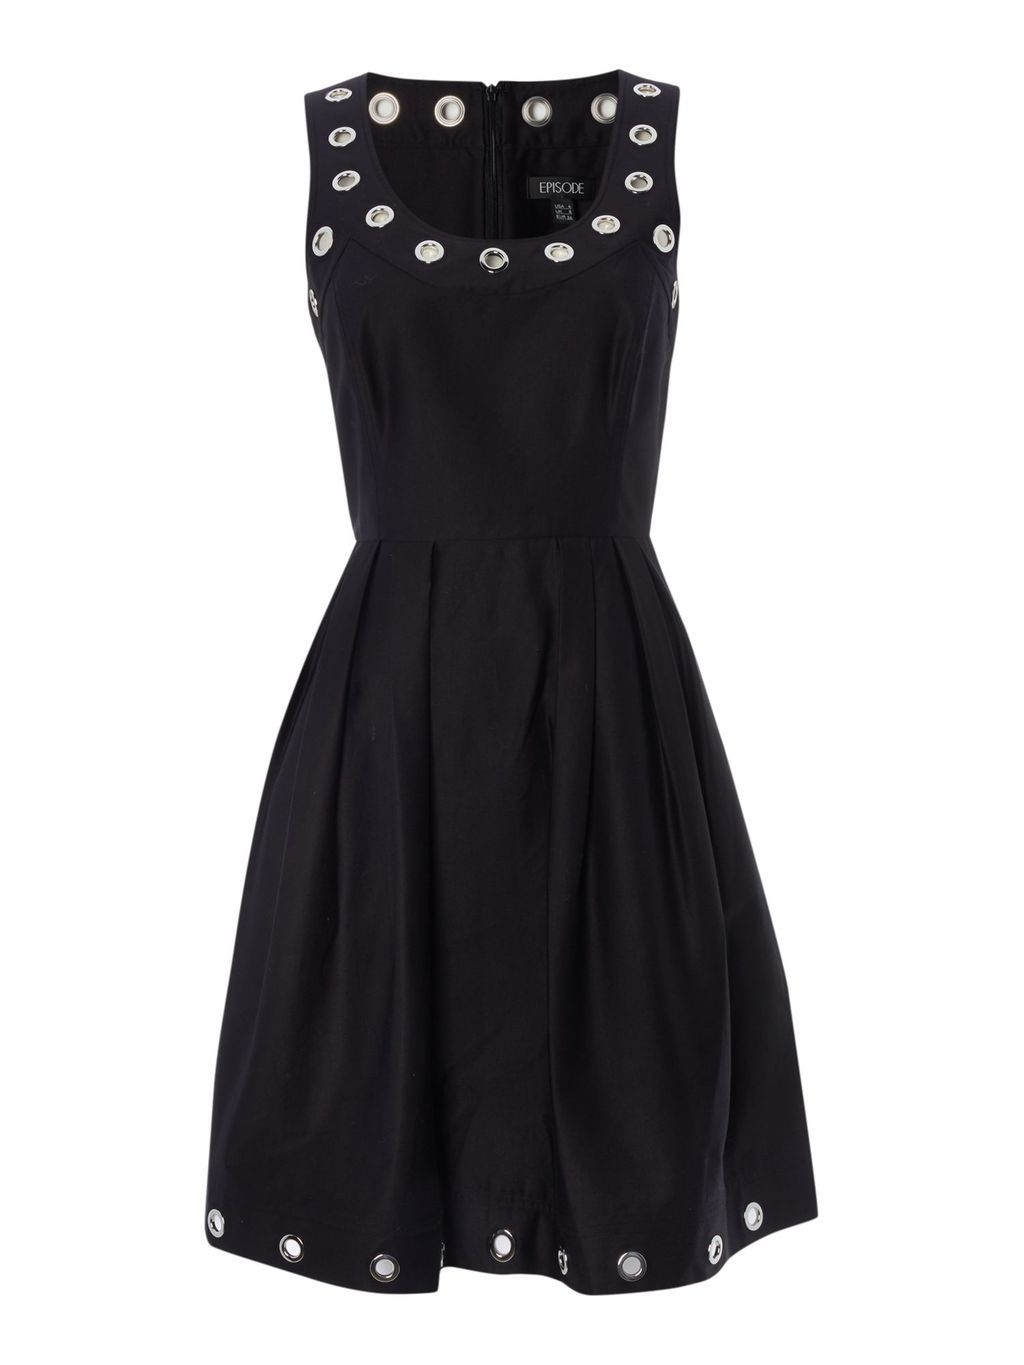 Sleeveless Fit & Flare Dress With Silver Eyelets, Black - neckline: round neck; pattern: plain; sleeve style: sleeveless; bust detail: added detail/embellishment at bust; hip detail: fitted at hip; predominant colour: black; occasions: evening; length: on the knee; fit: fitted at waist & bust; style: fit & flare; fibres: cotton - stretch; sleeve length: sleeveless; pattern type: fabric; texture group: jersey - stretchy/drapey; season: s/s 2016